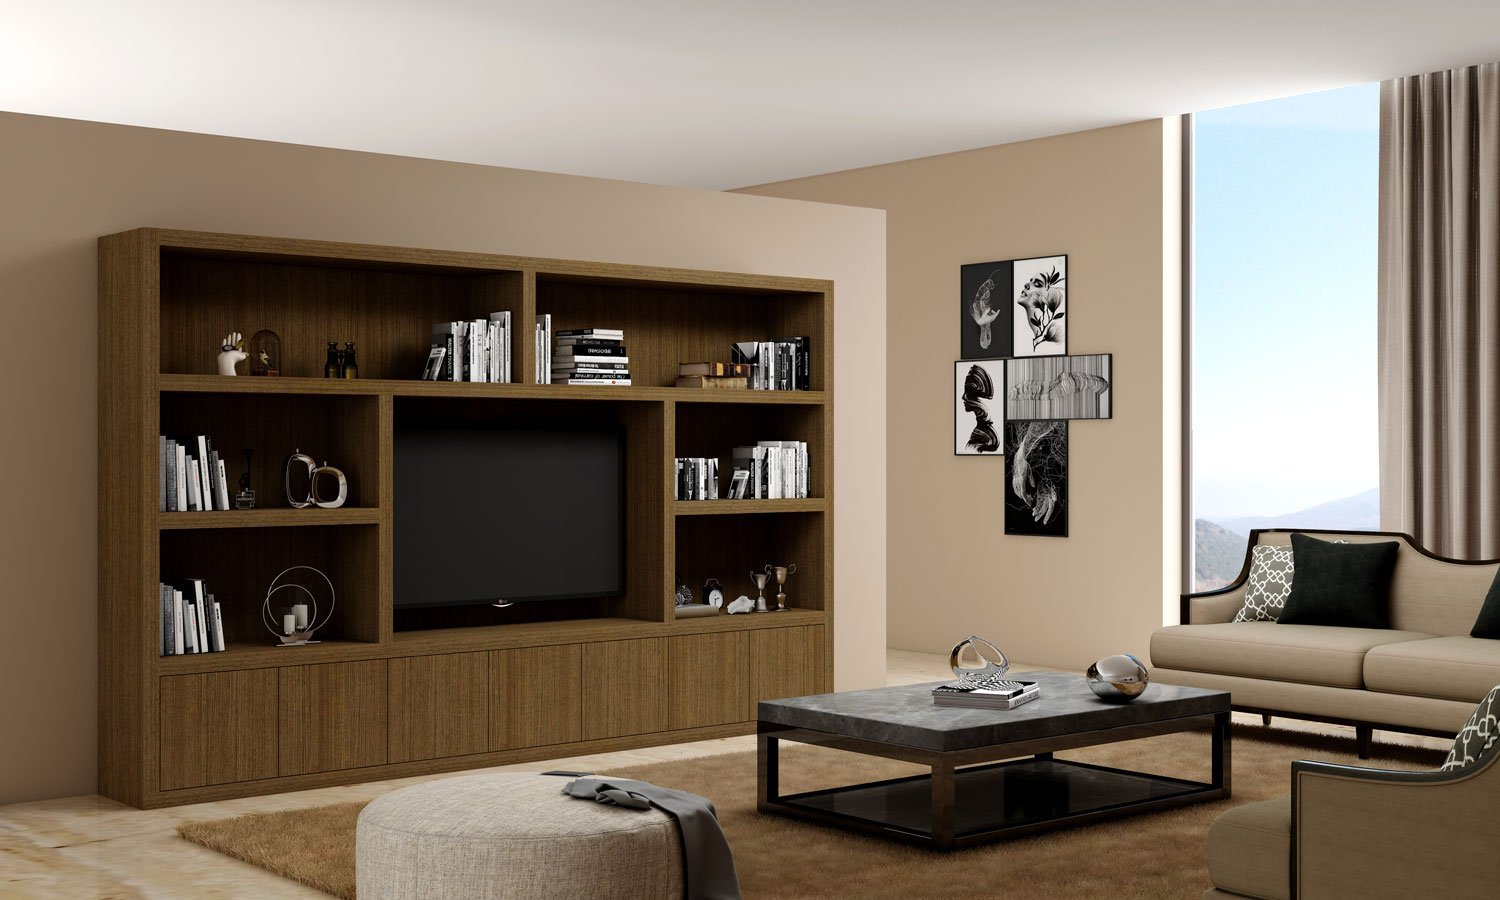 Wooden TV Unit with Storage in Open Units and base units in combination of Natural Carini Walnut